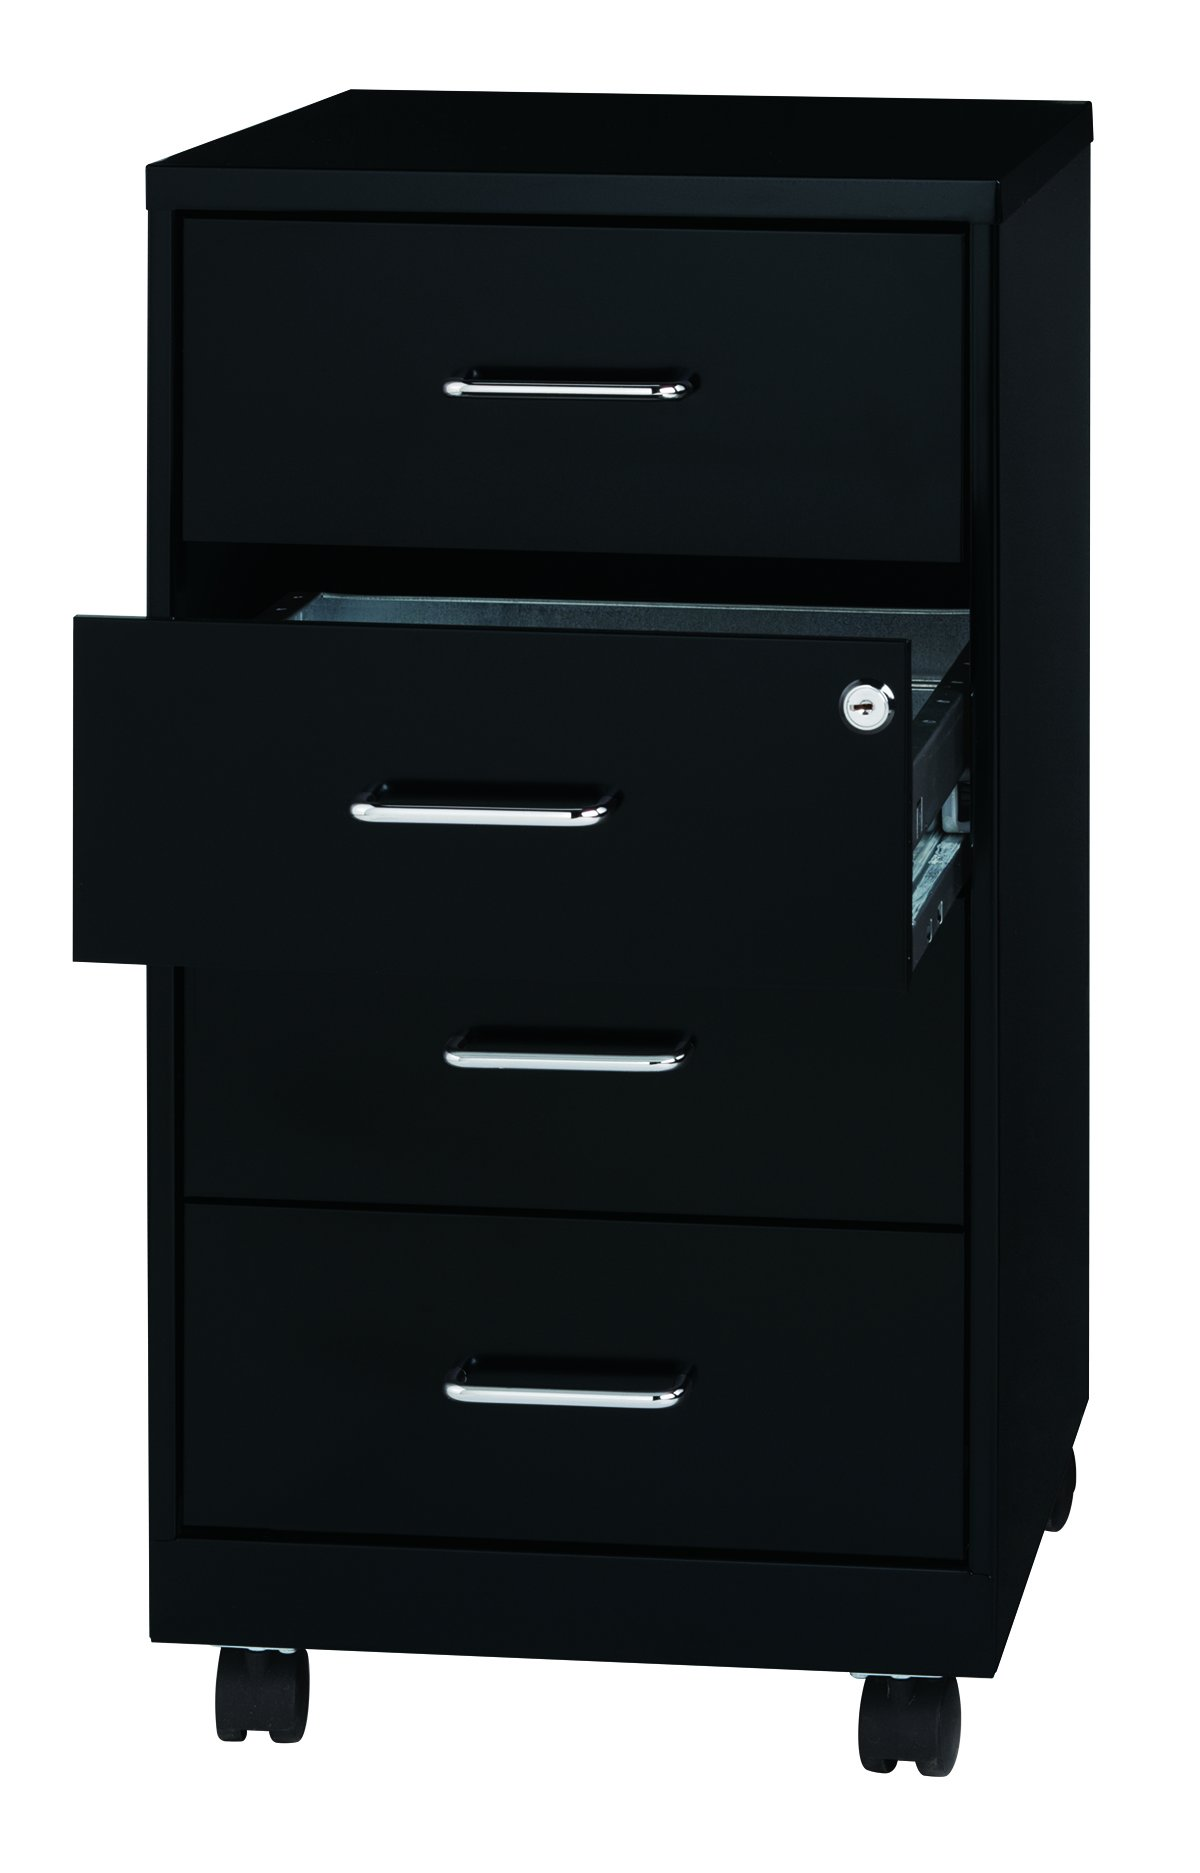 Office Dimensions 18'' Deep 4 Drawer Mobile Metal Organizer, Craft and Office Cabinet, Black